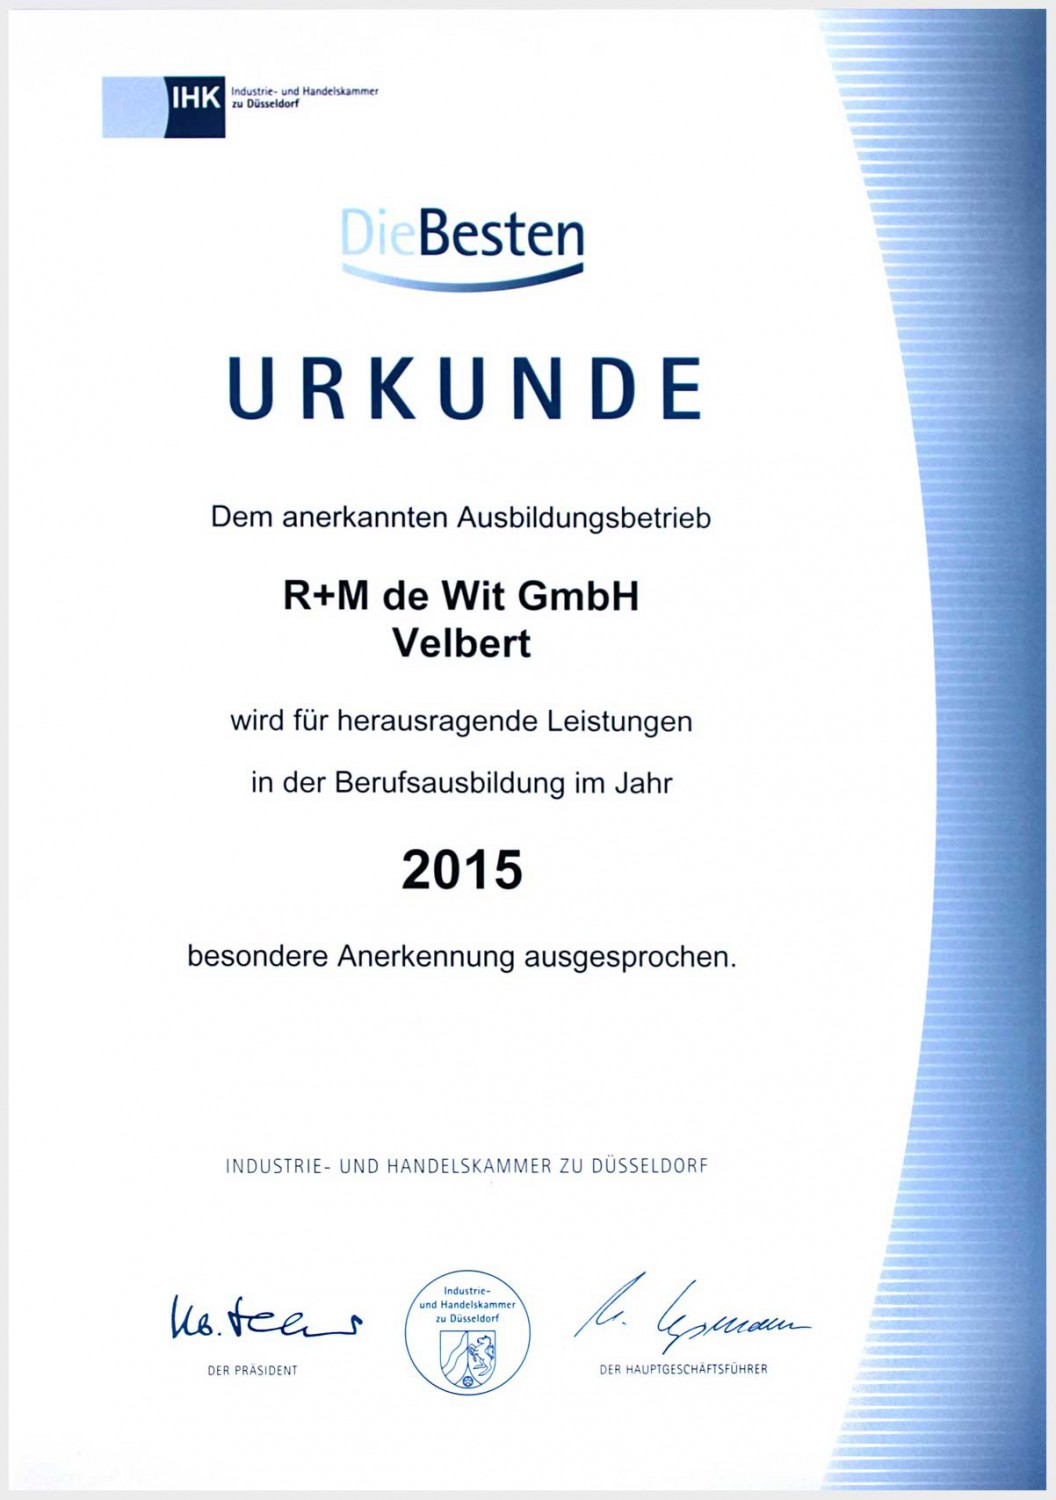 Certificate for the training company R+M de Wit